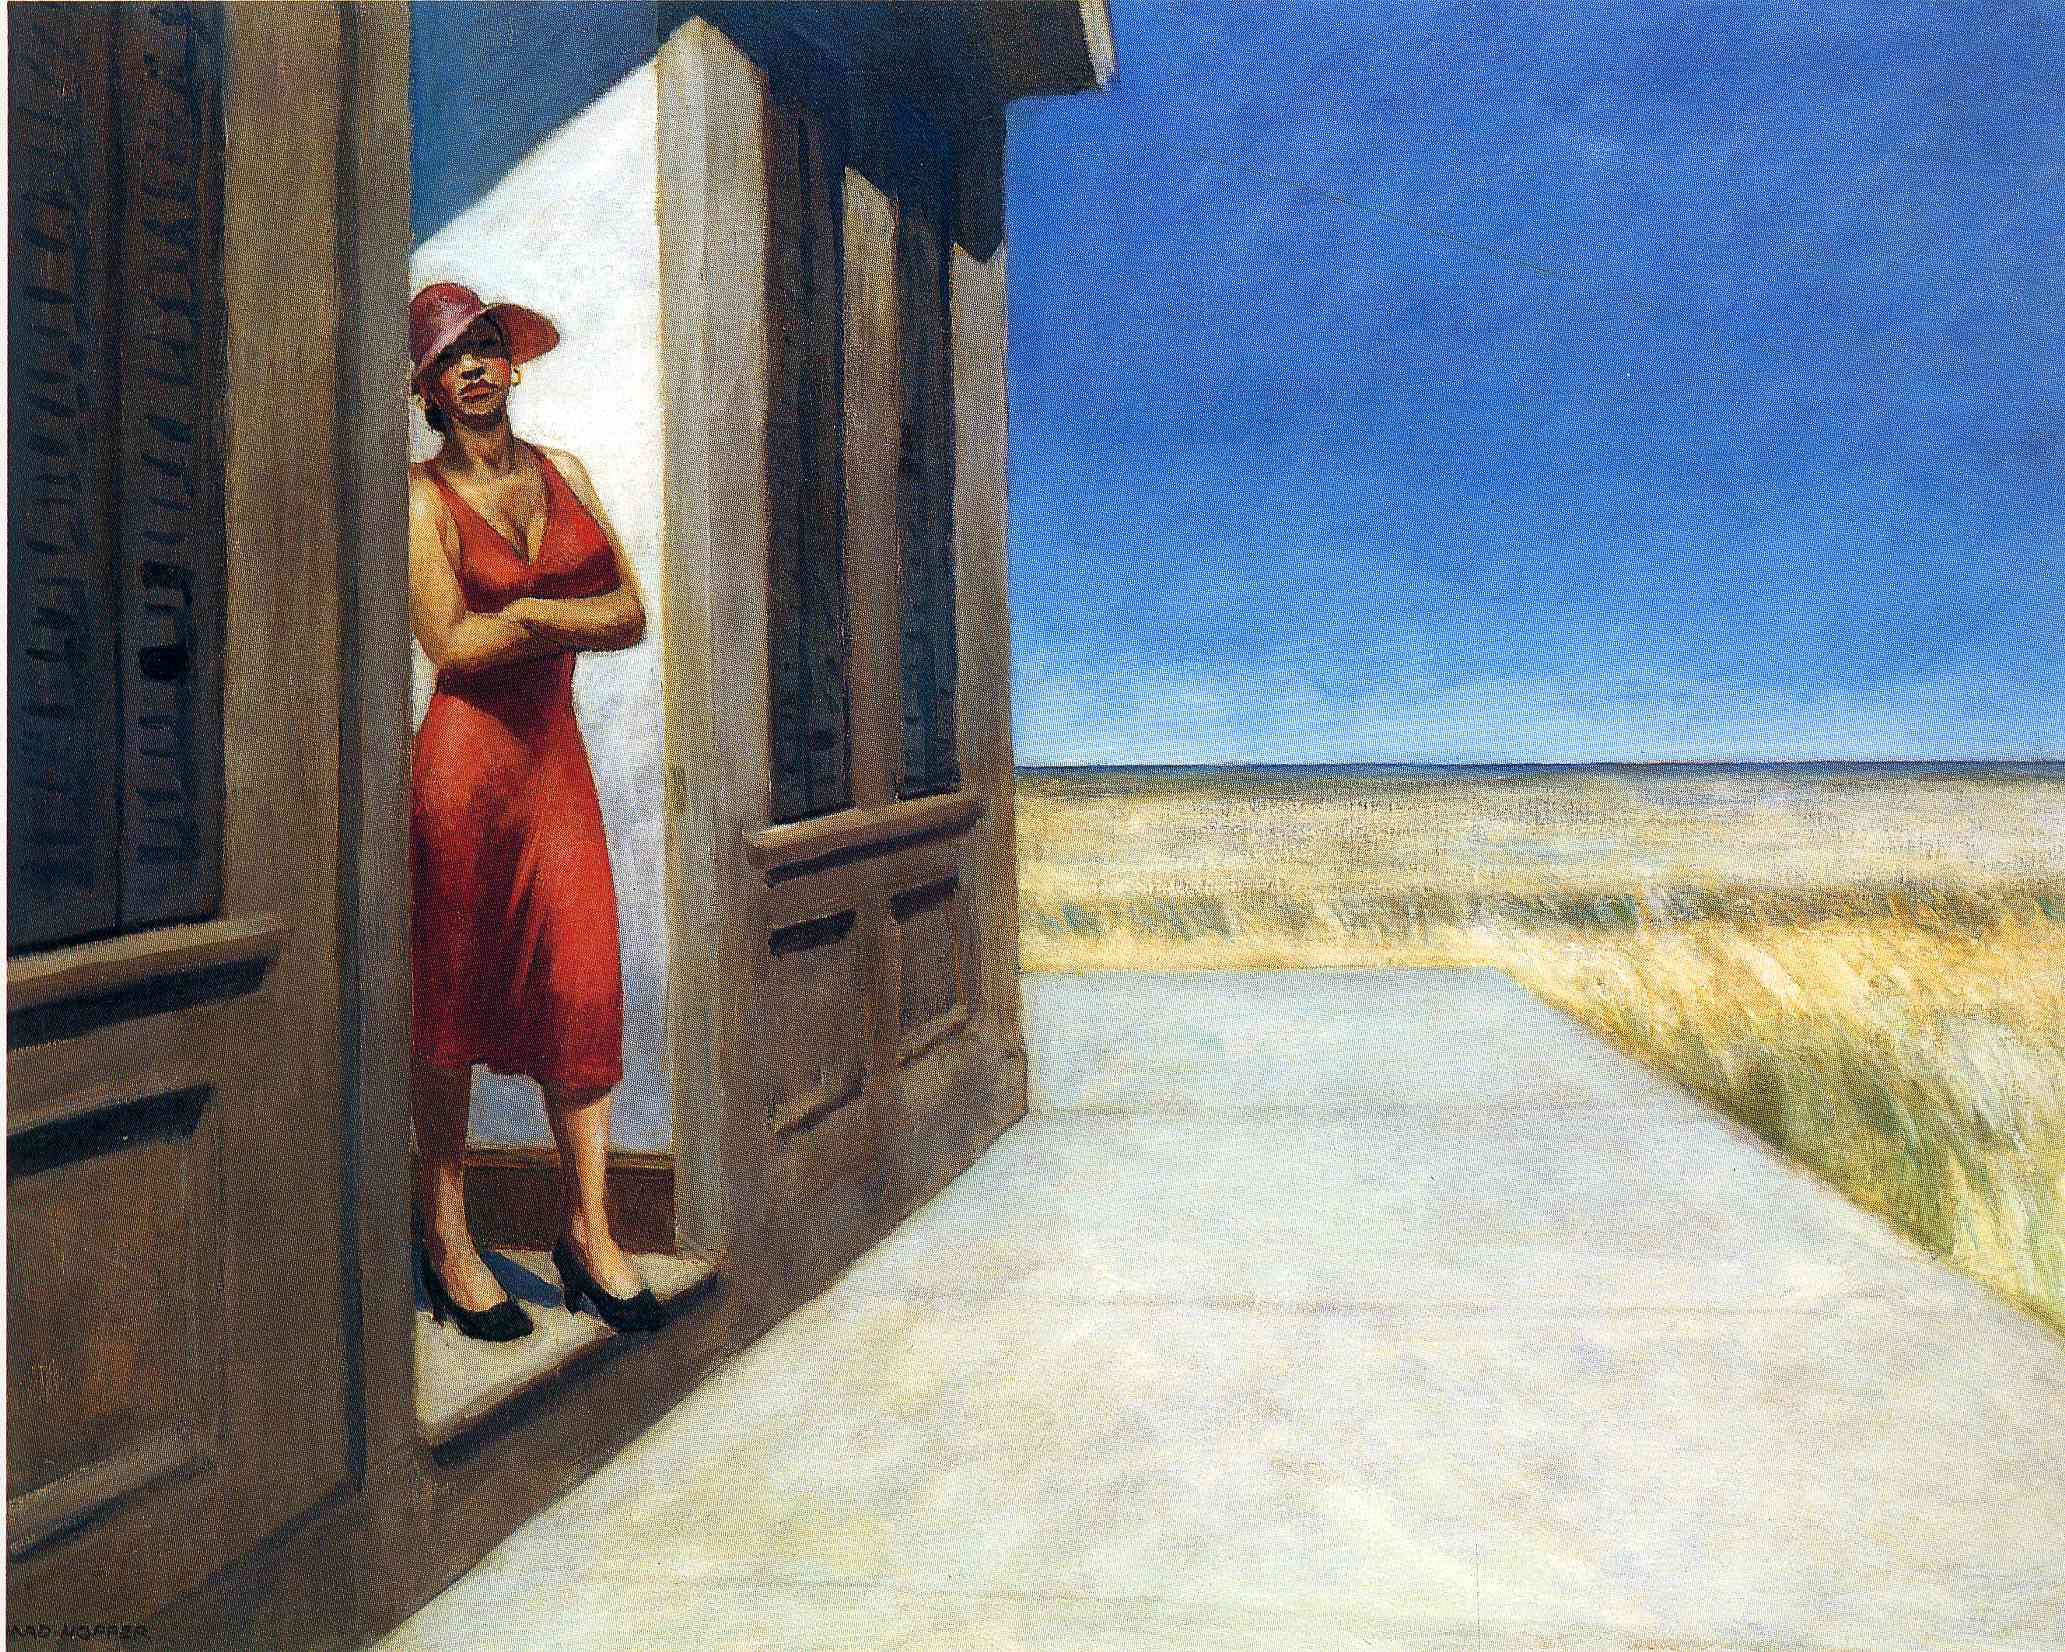 edward hopper Overview collection information size: sound recording: 1 sound tape reel 3 3/4  ips 7 in transcript: 12 p summary: an interview of edward hopper conducted.